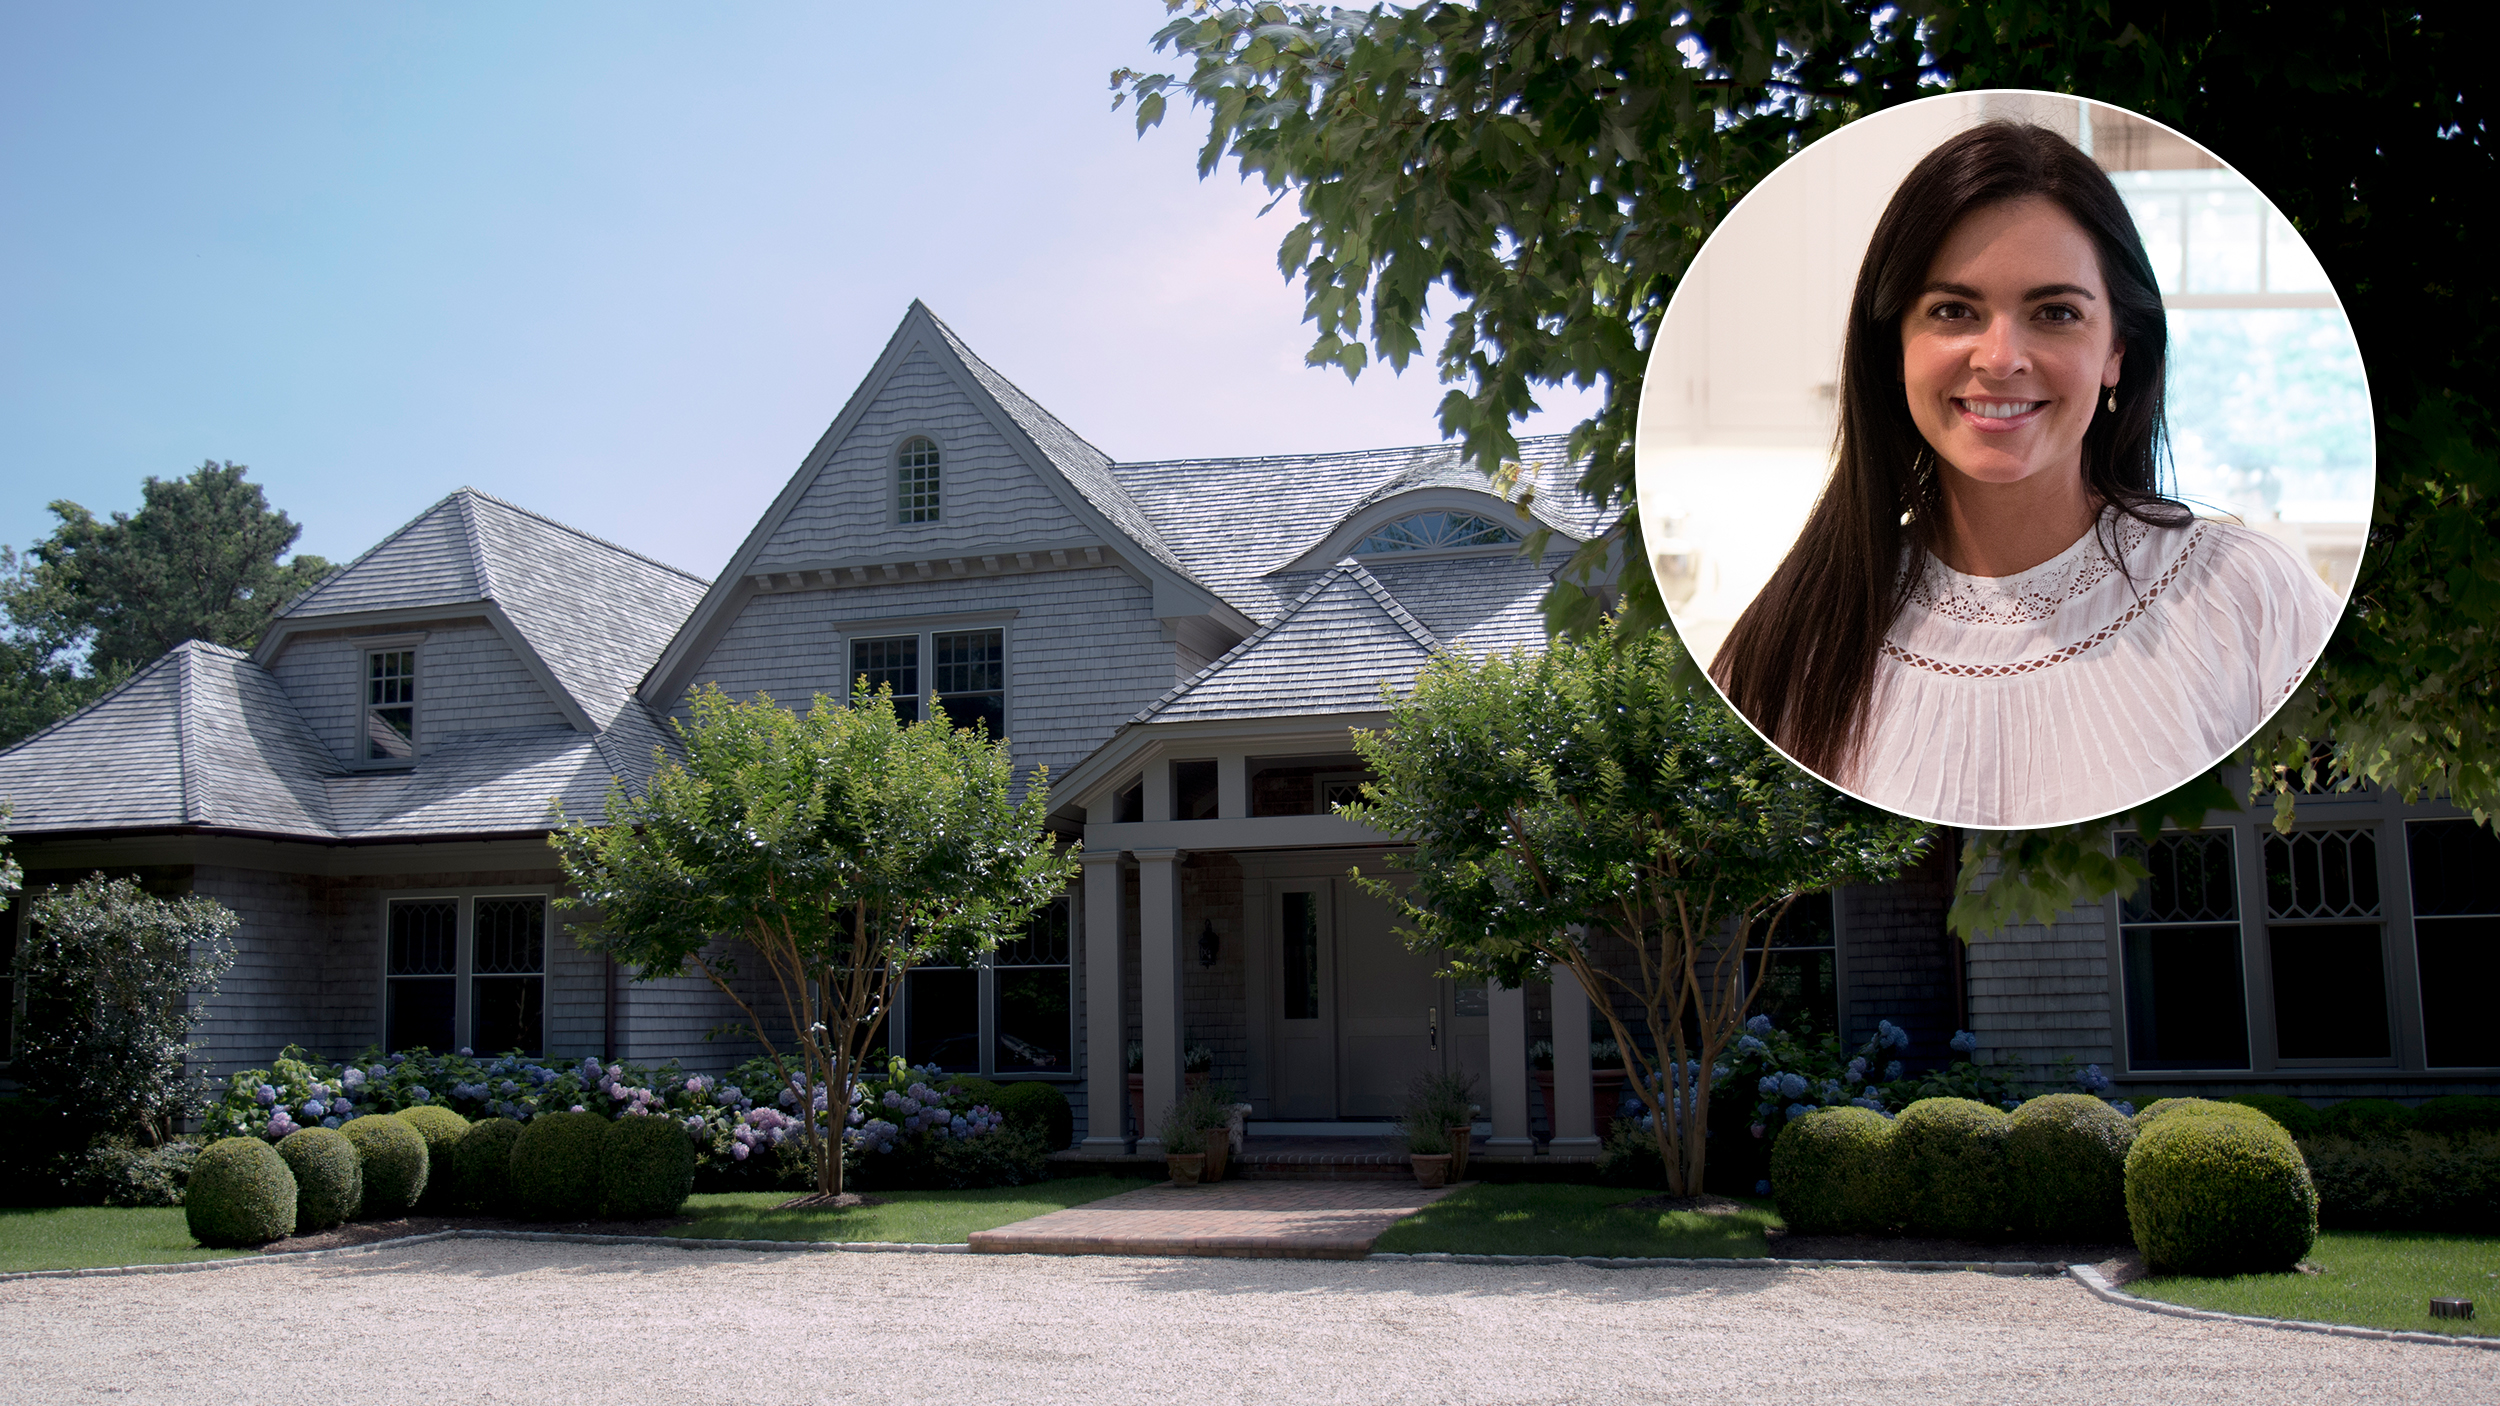 Katie Lee\'s kitchen: See inside her Water Mill home - TODAY.com